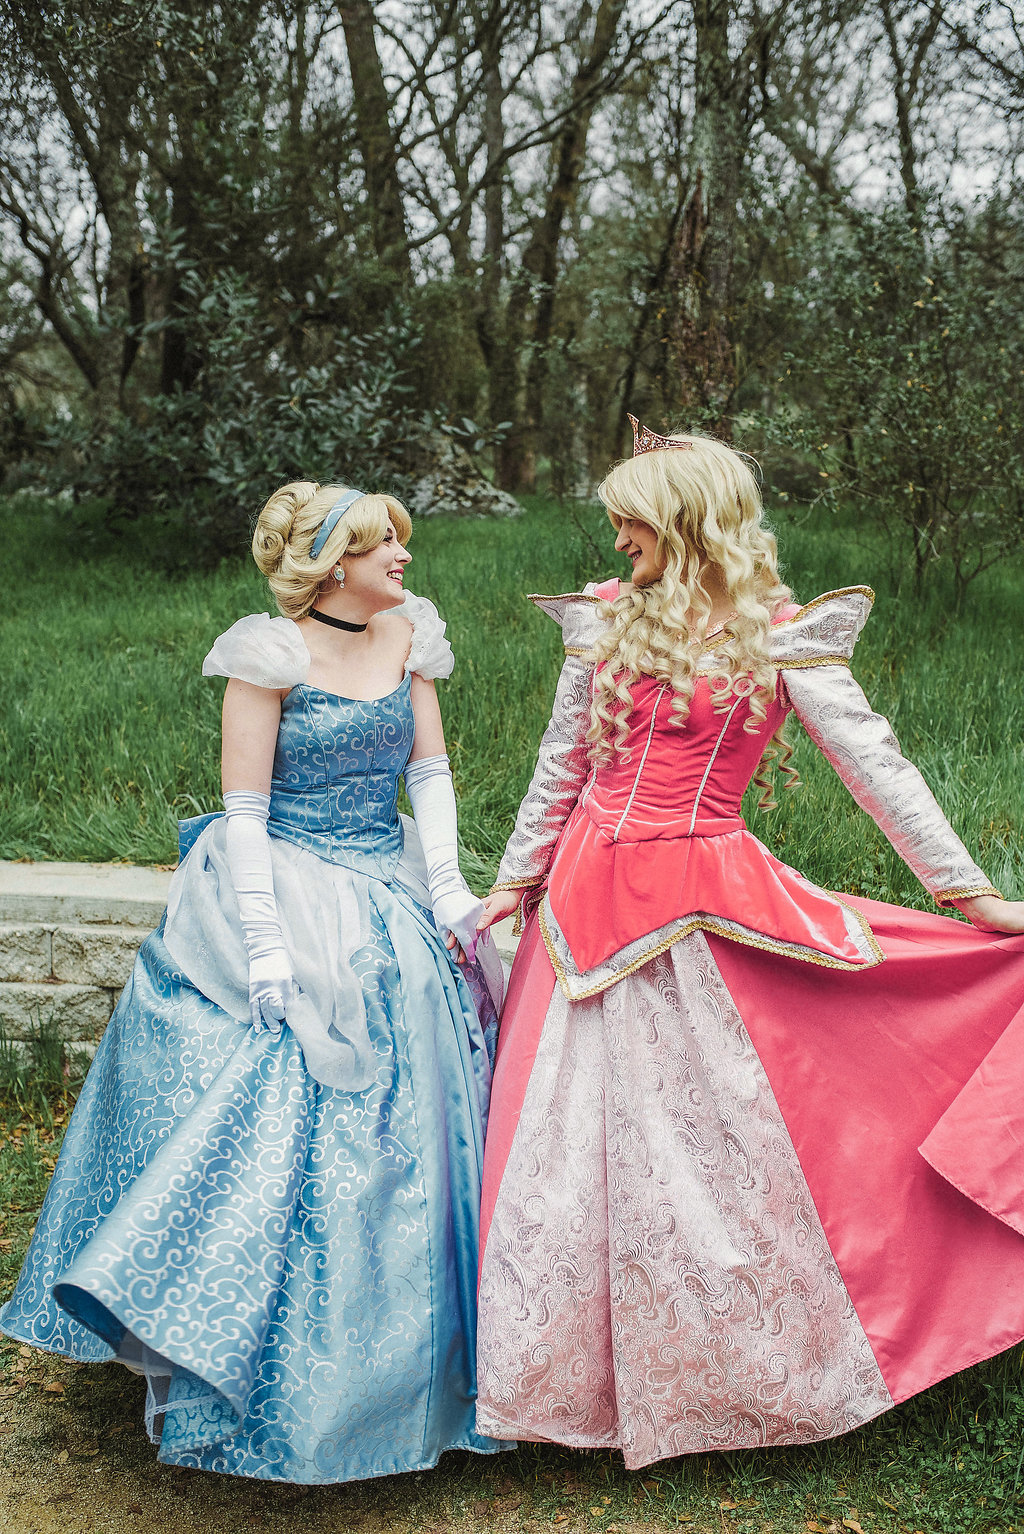 Princess Aurora and Cinderella